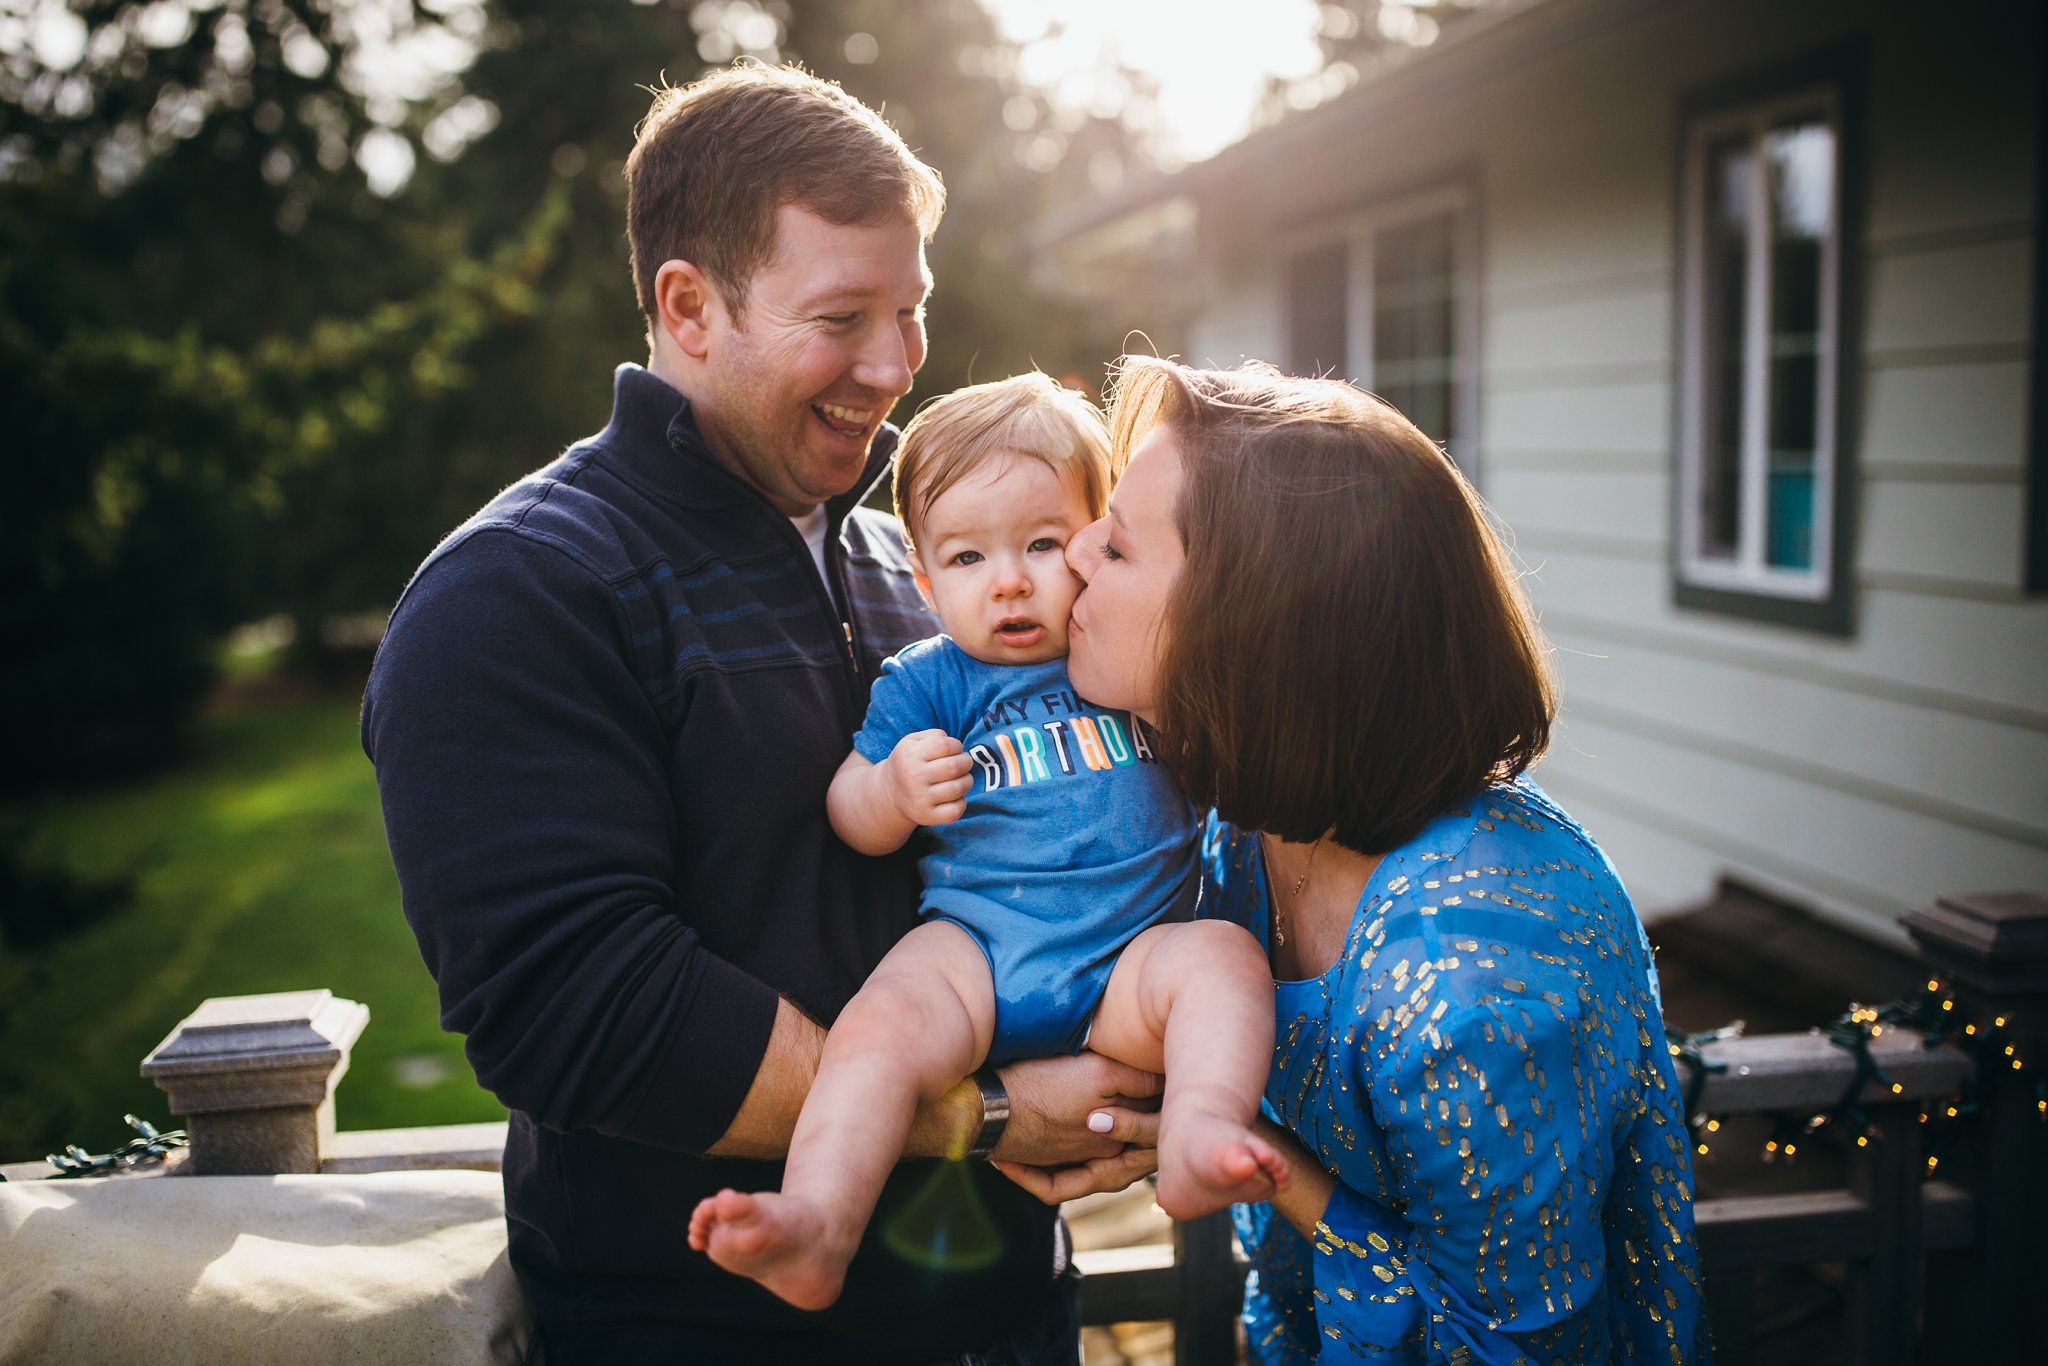 Whidbey-Island-Family-Photographer-Kara-Chappell-Photography_1935.jpg